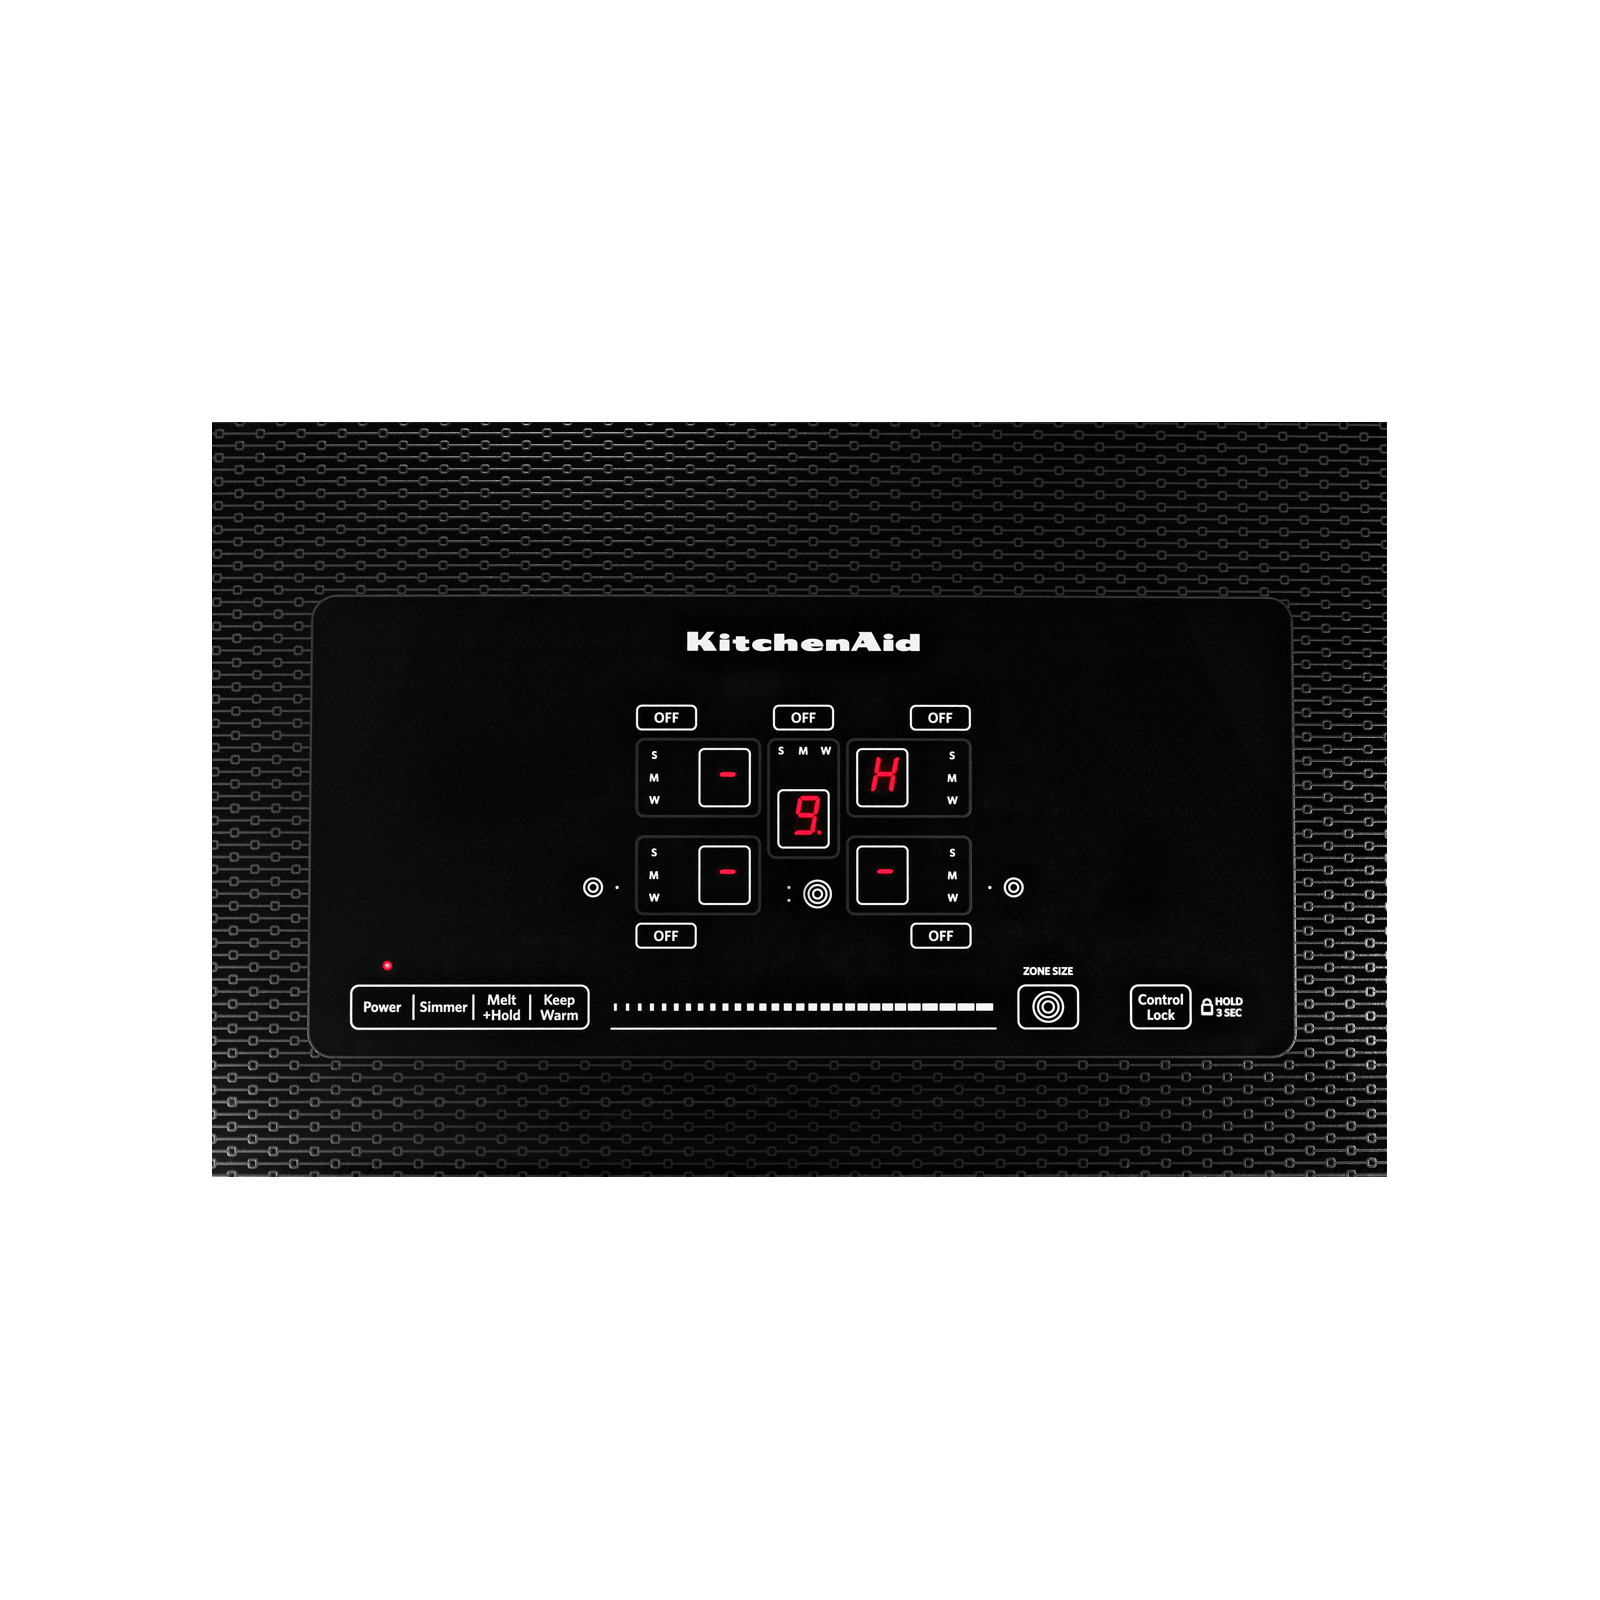 "KitchenAid KECC667BSS 36"" 5-Element Electric Cooktop with Even-Heat™ Technology  - Stainless Steel"